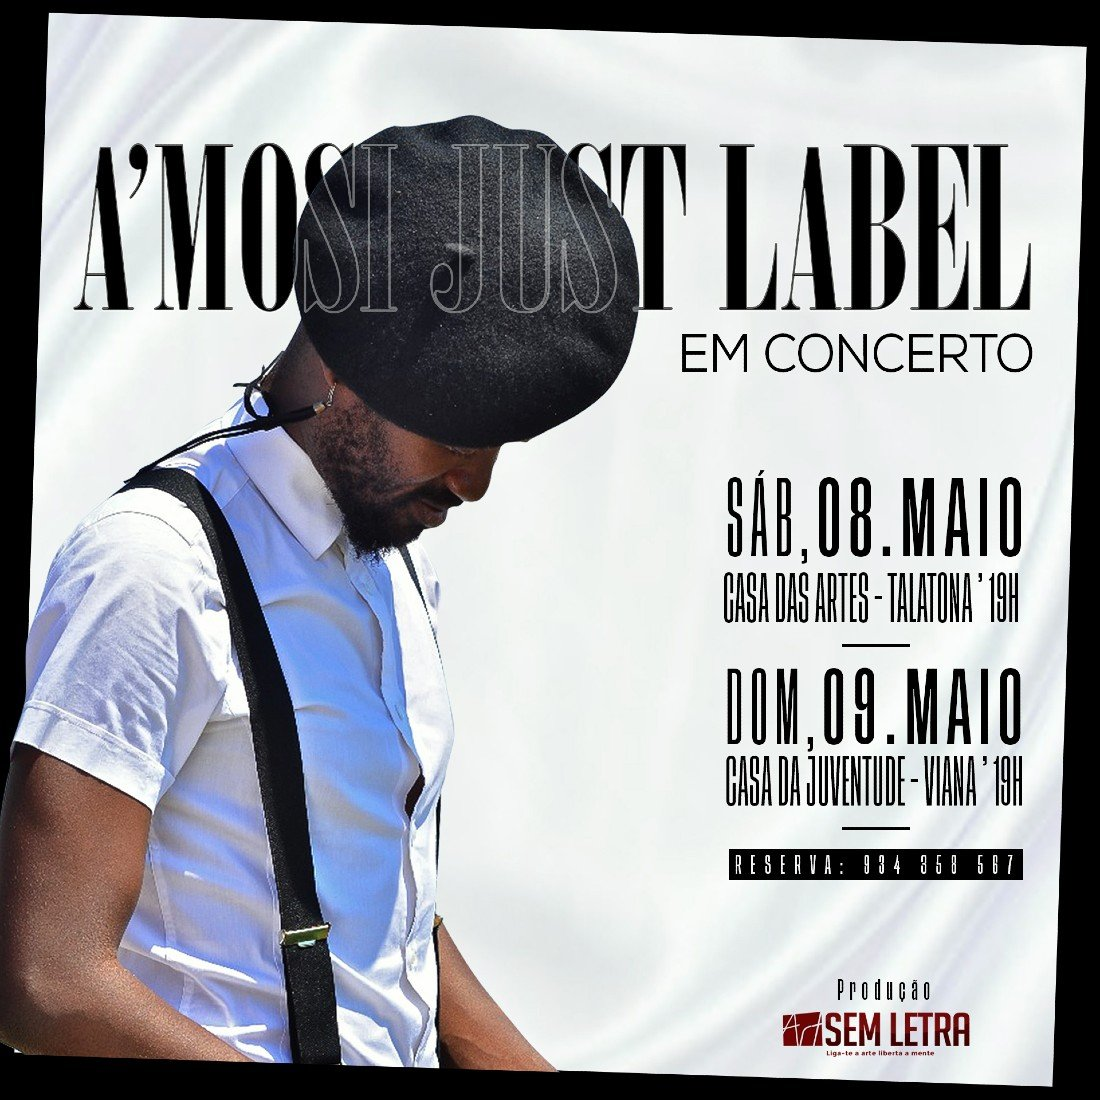 A'MOSI JUST A LABEL EM CONCERTO | Event in Luanda | AllEvents.in